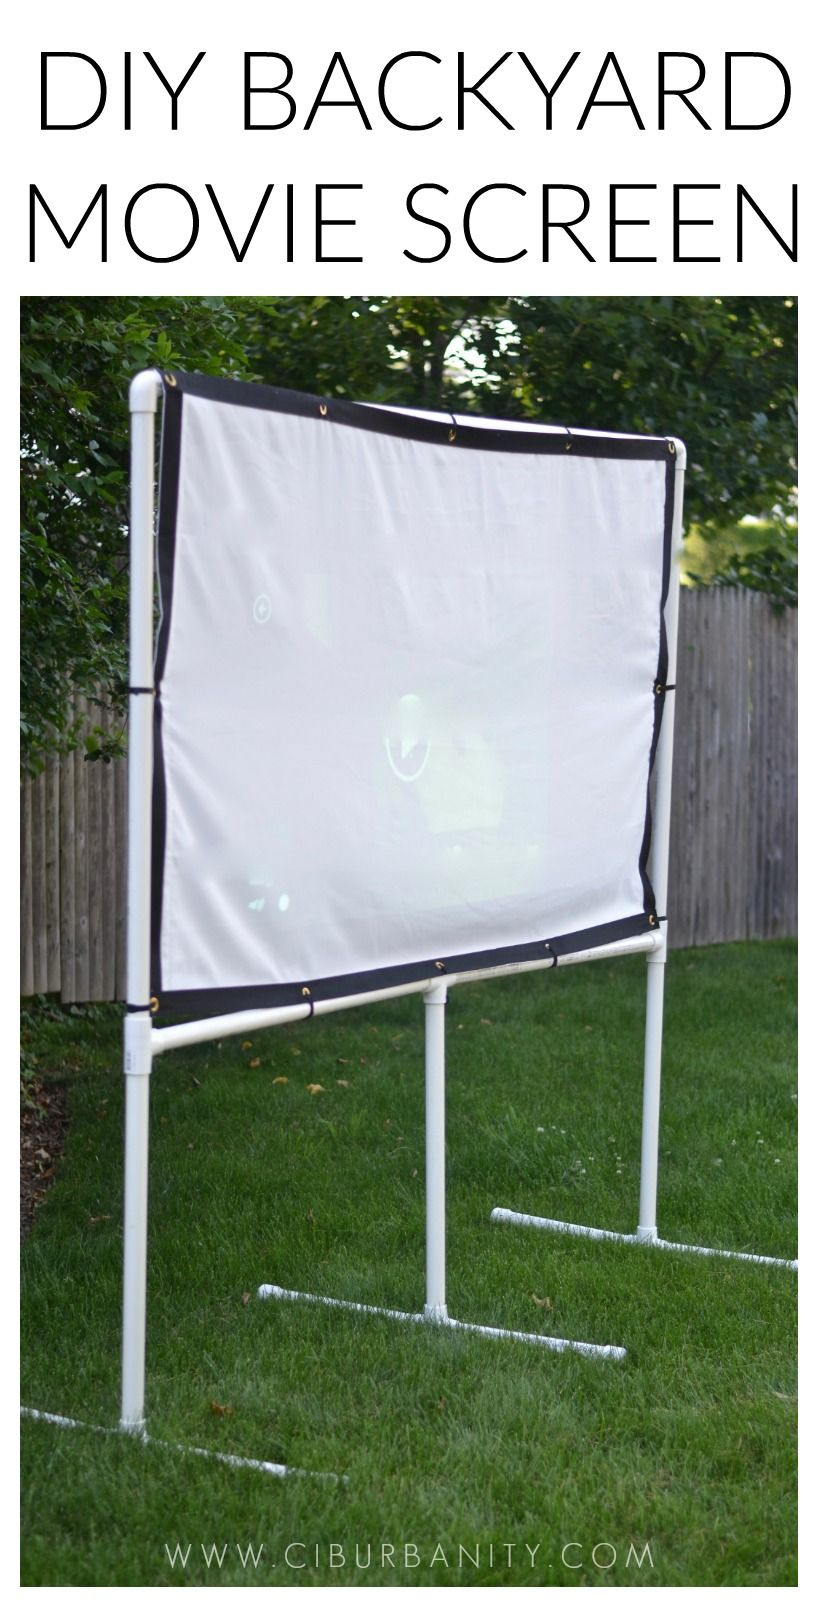 diy backyard movie screen backyard movie screen pvc pipe and pipes